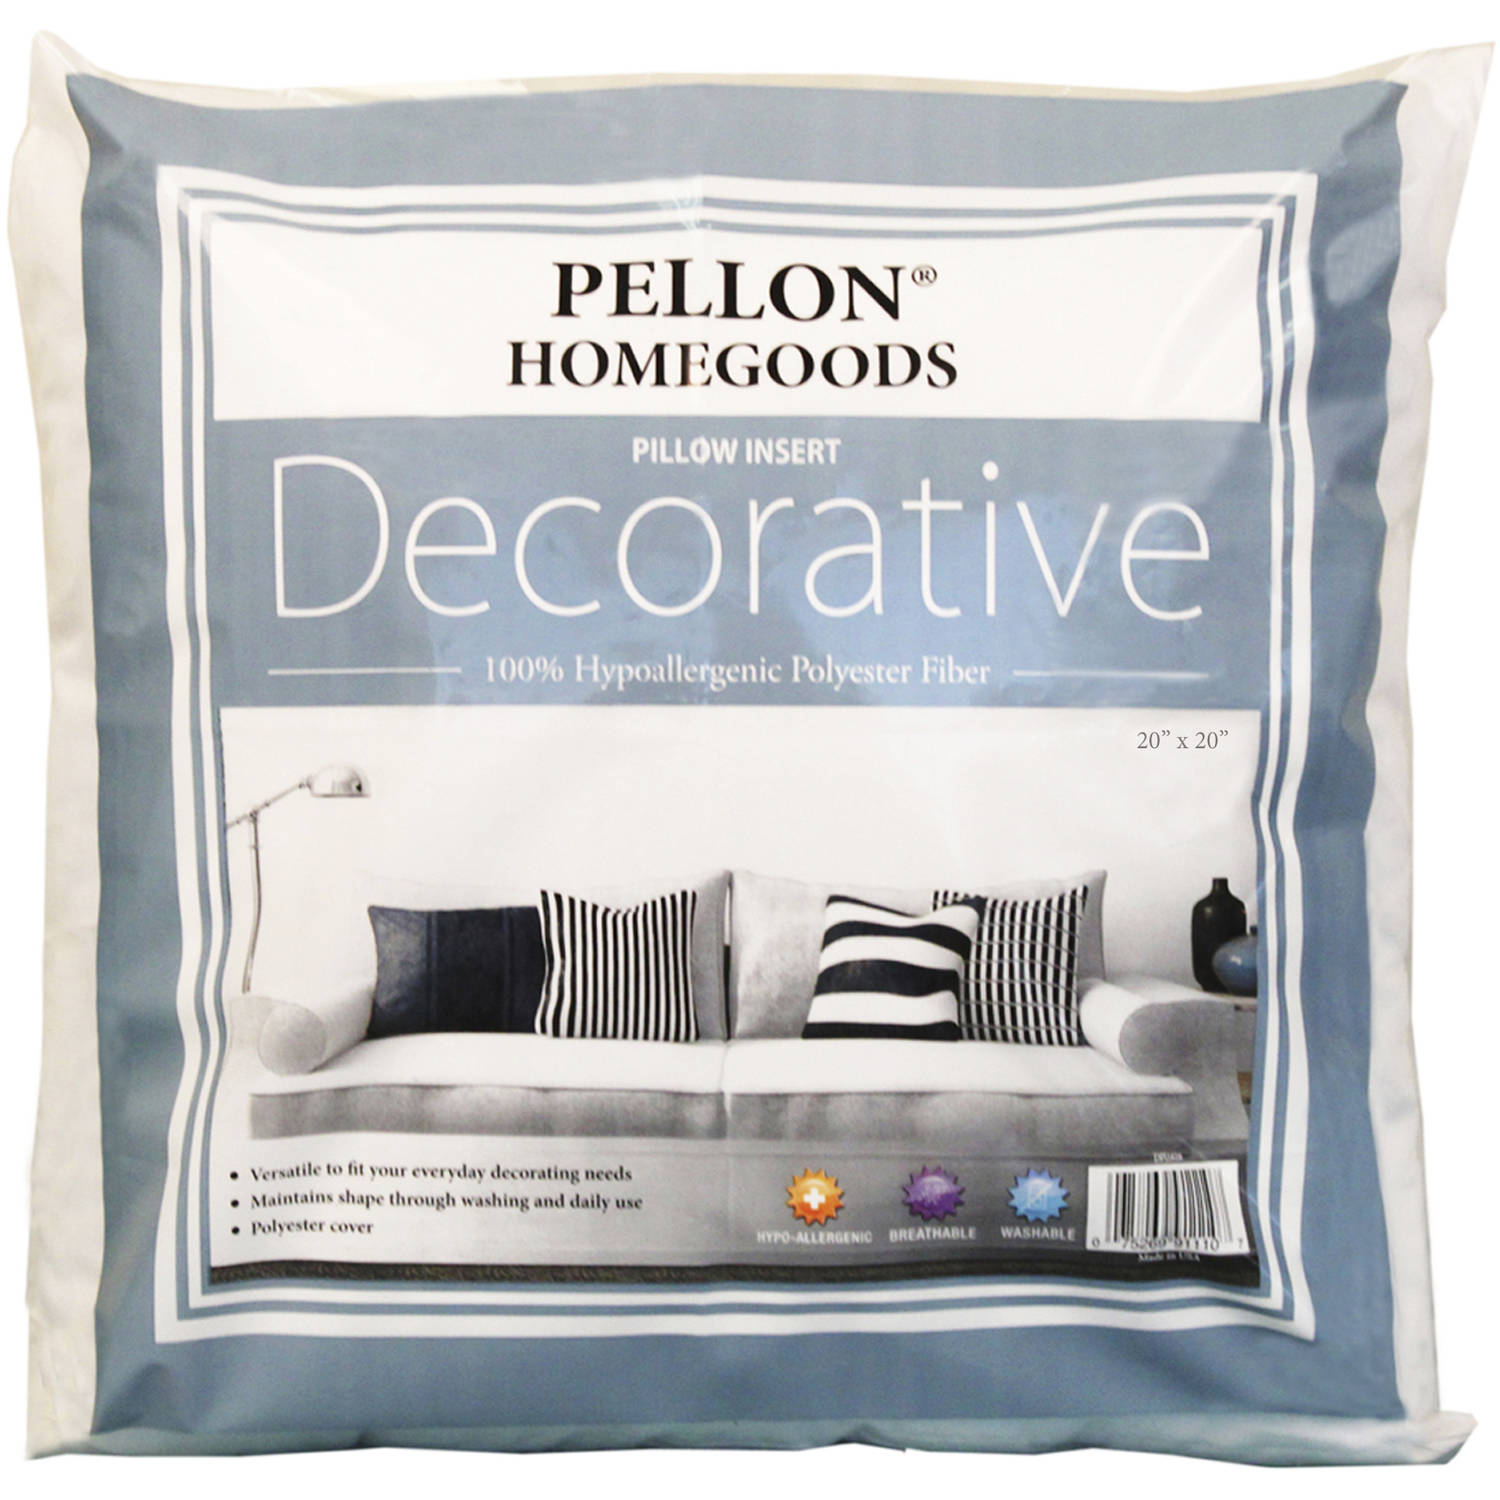 "Pellon Decorative Pillow Insert, 20"" x 20"", Single"